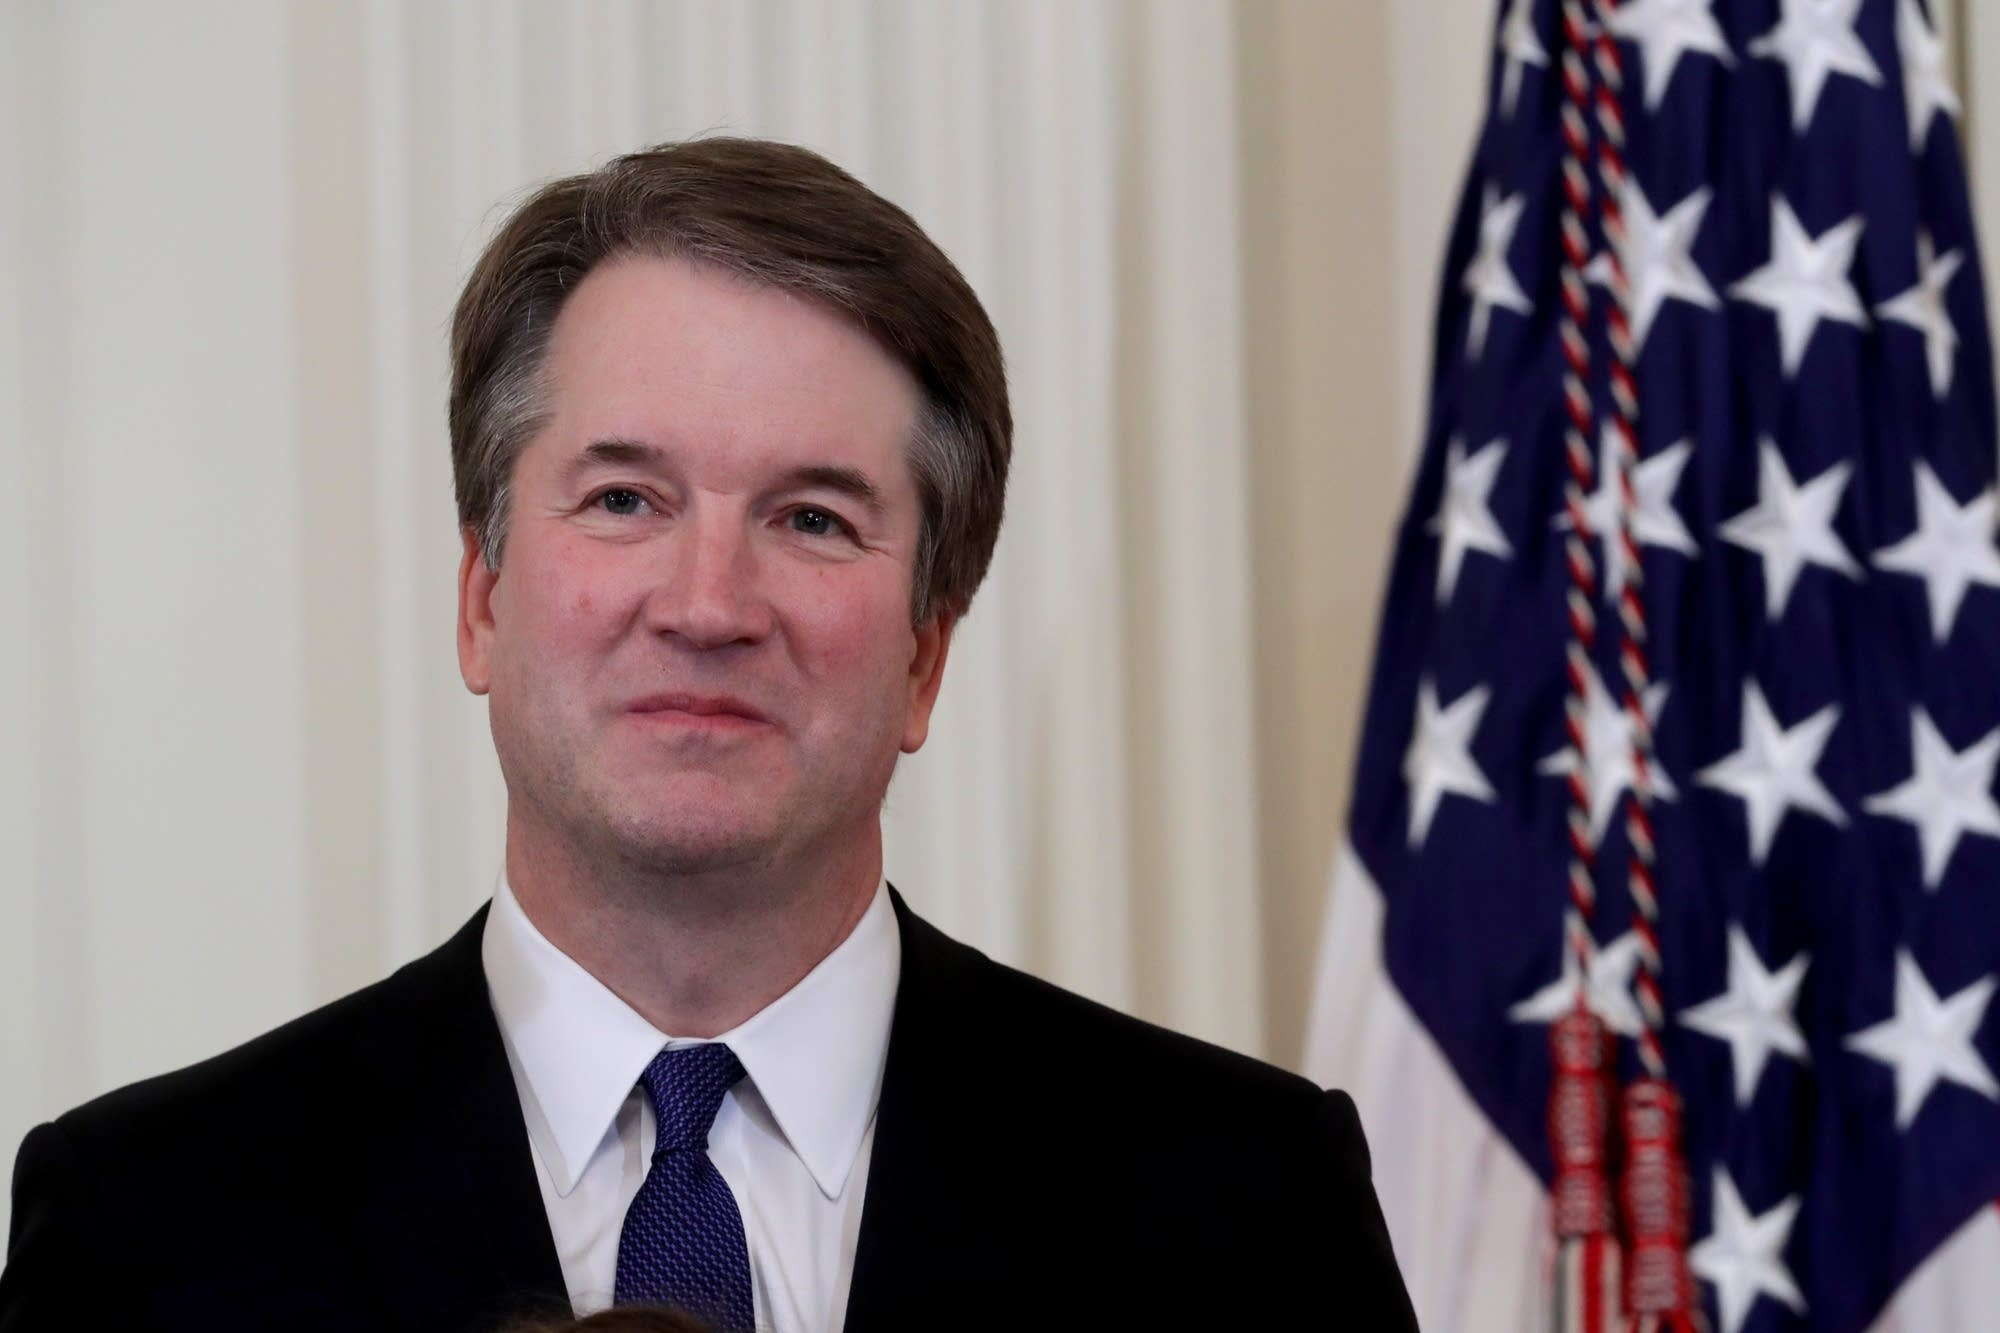 U.S. Circuit Judge Brett M. Kavanaugh looks on.